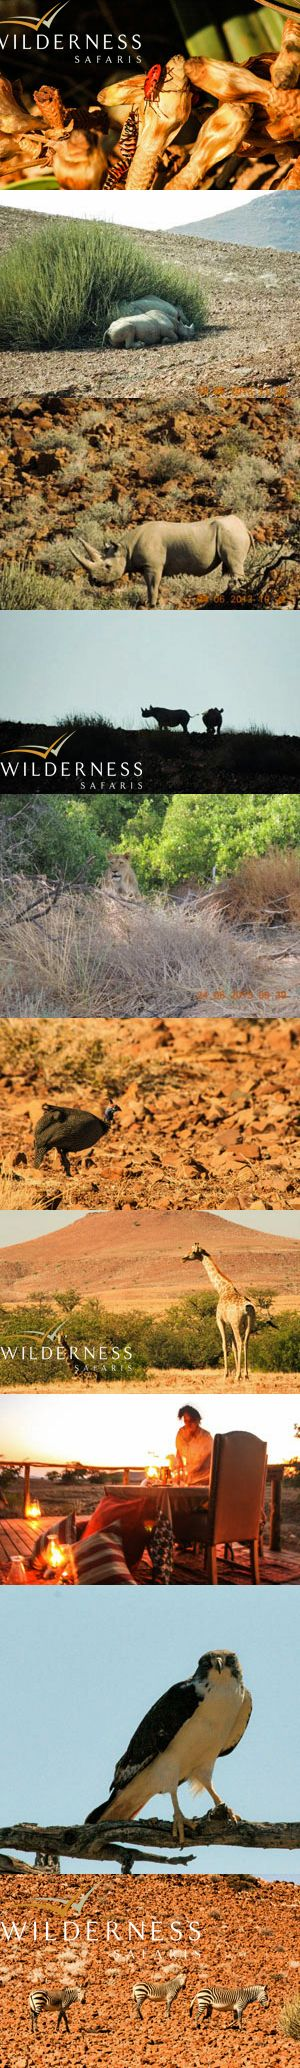 We Are Wilderness - June highlights from Desert Rhino Camp. Click on the image for more pictures.